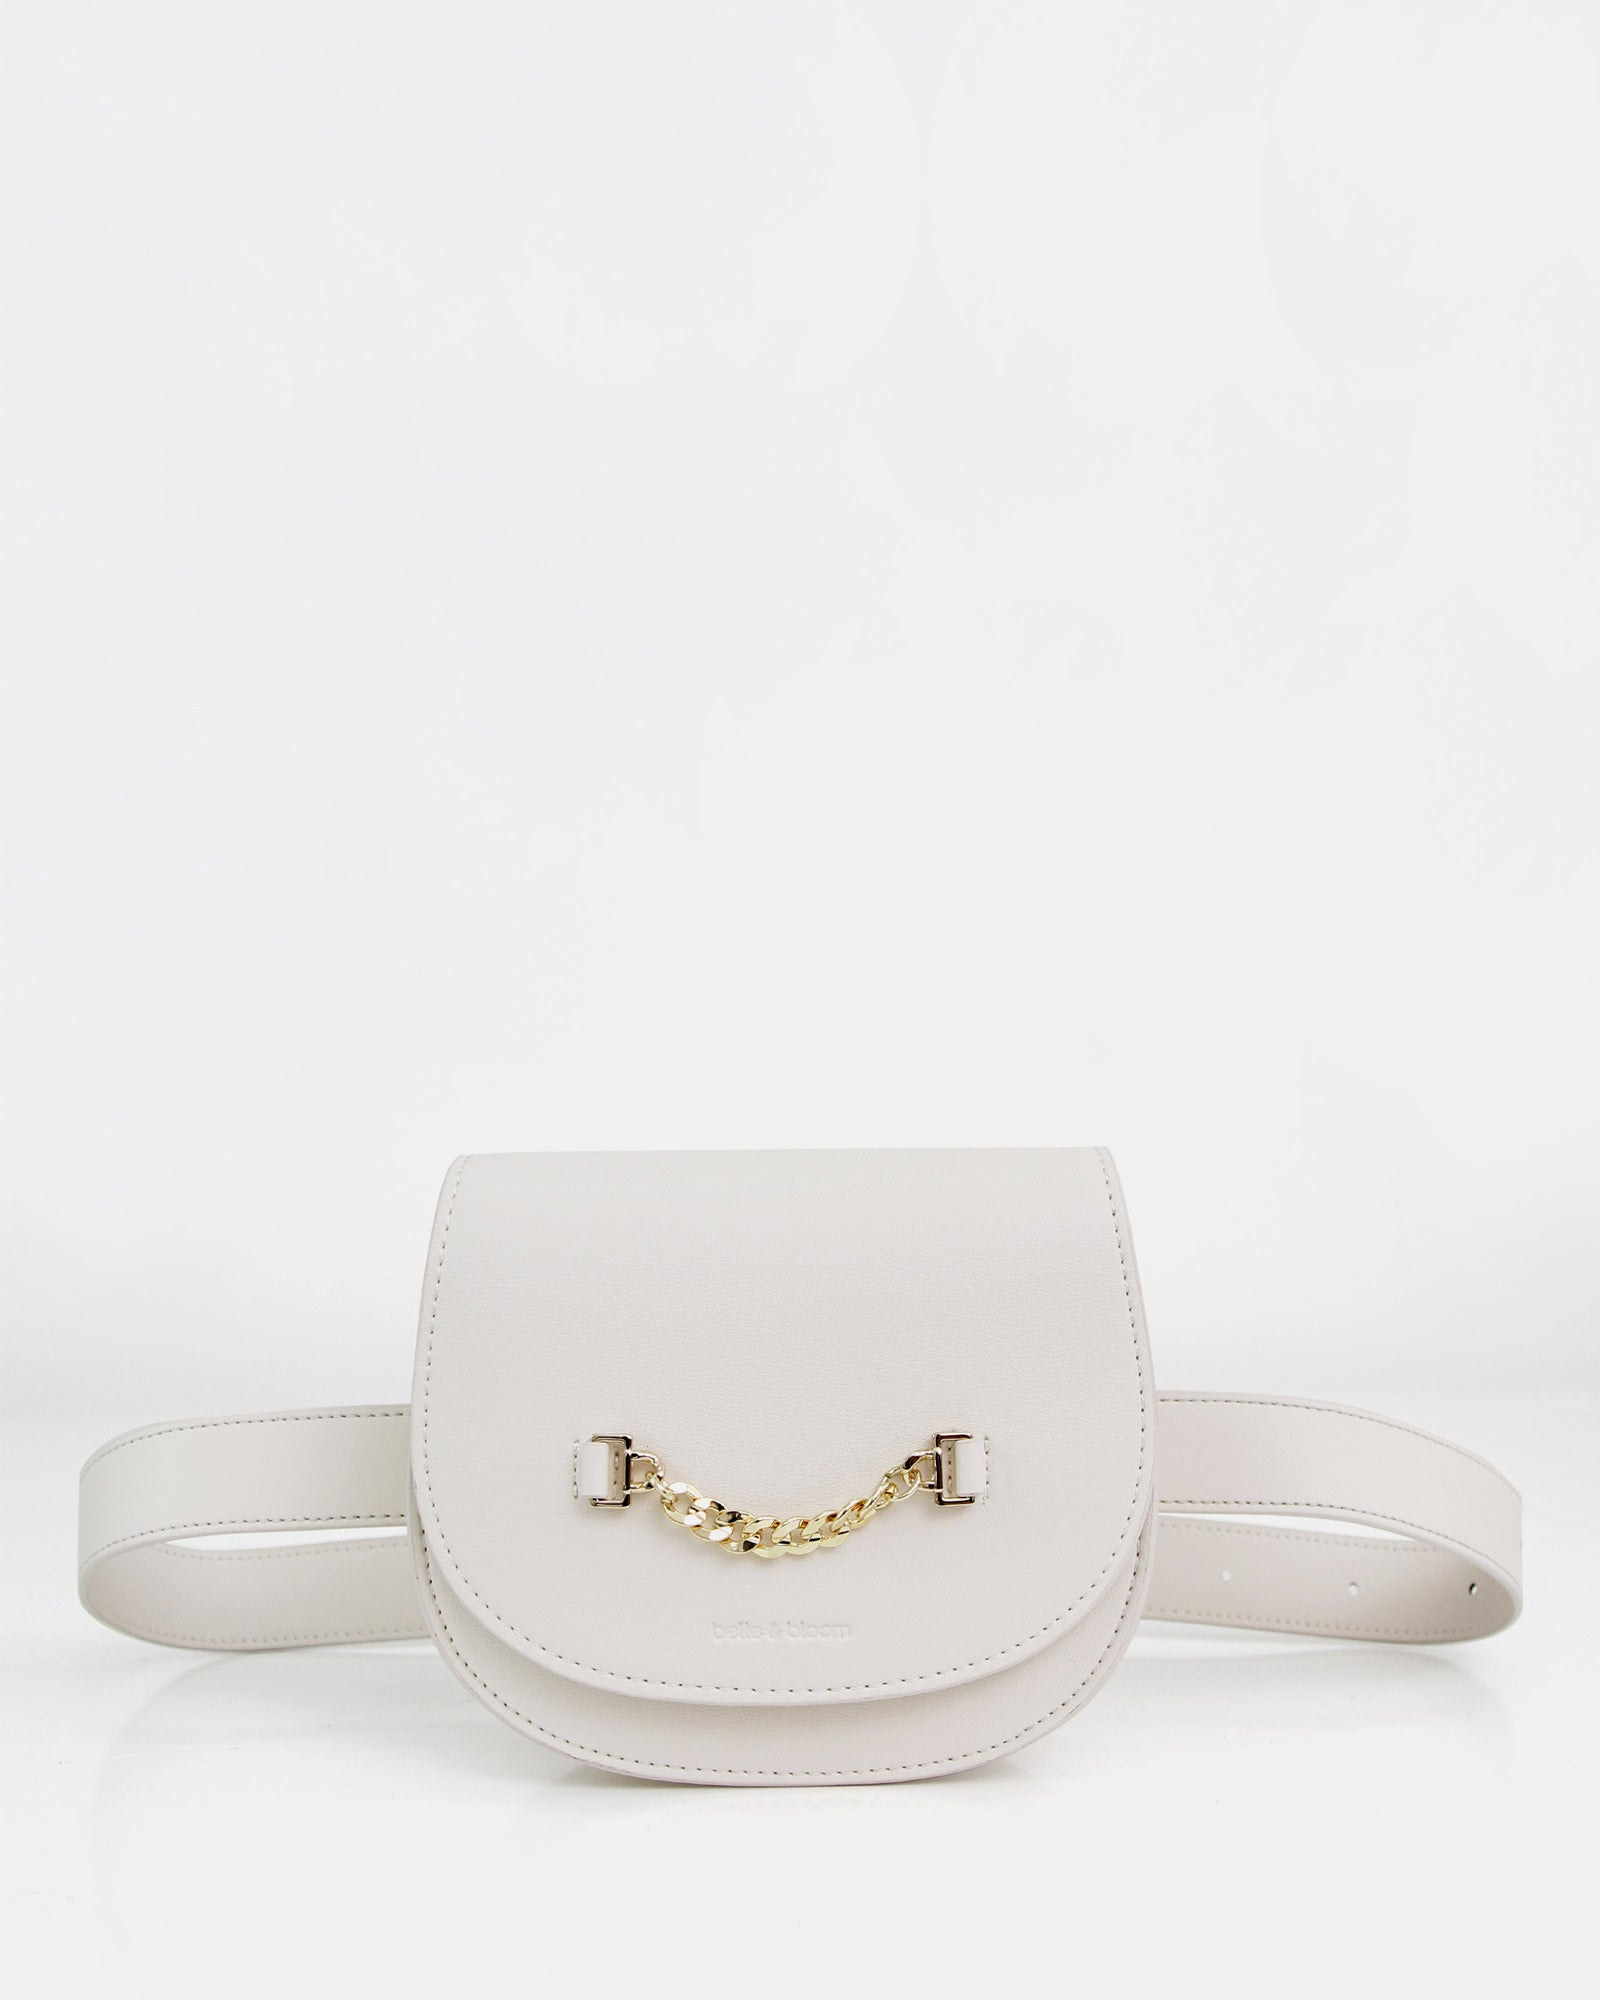 cream-leather-belt-bag-by-belle-&-bloom.jpg